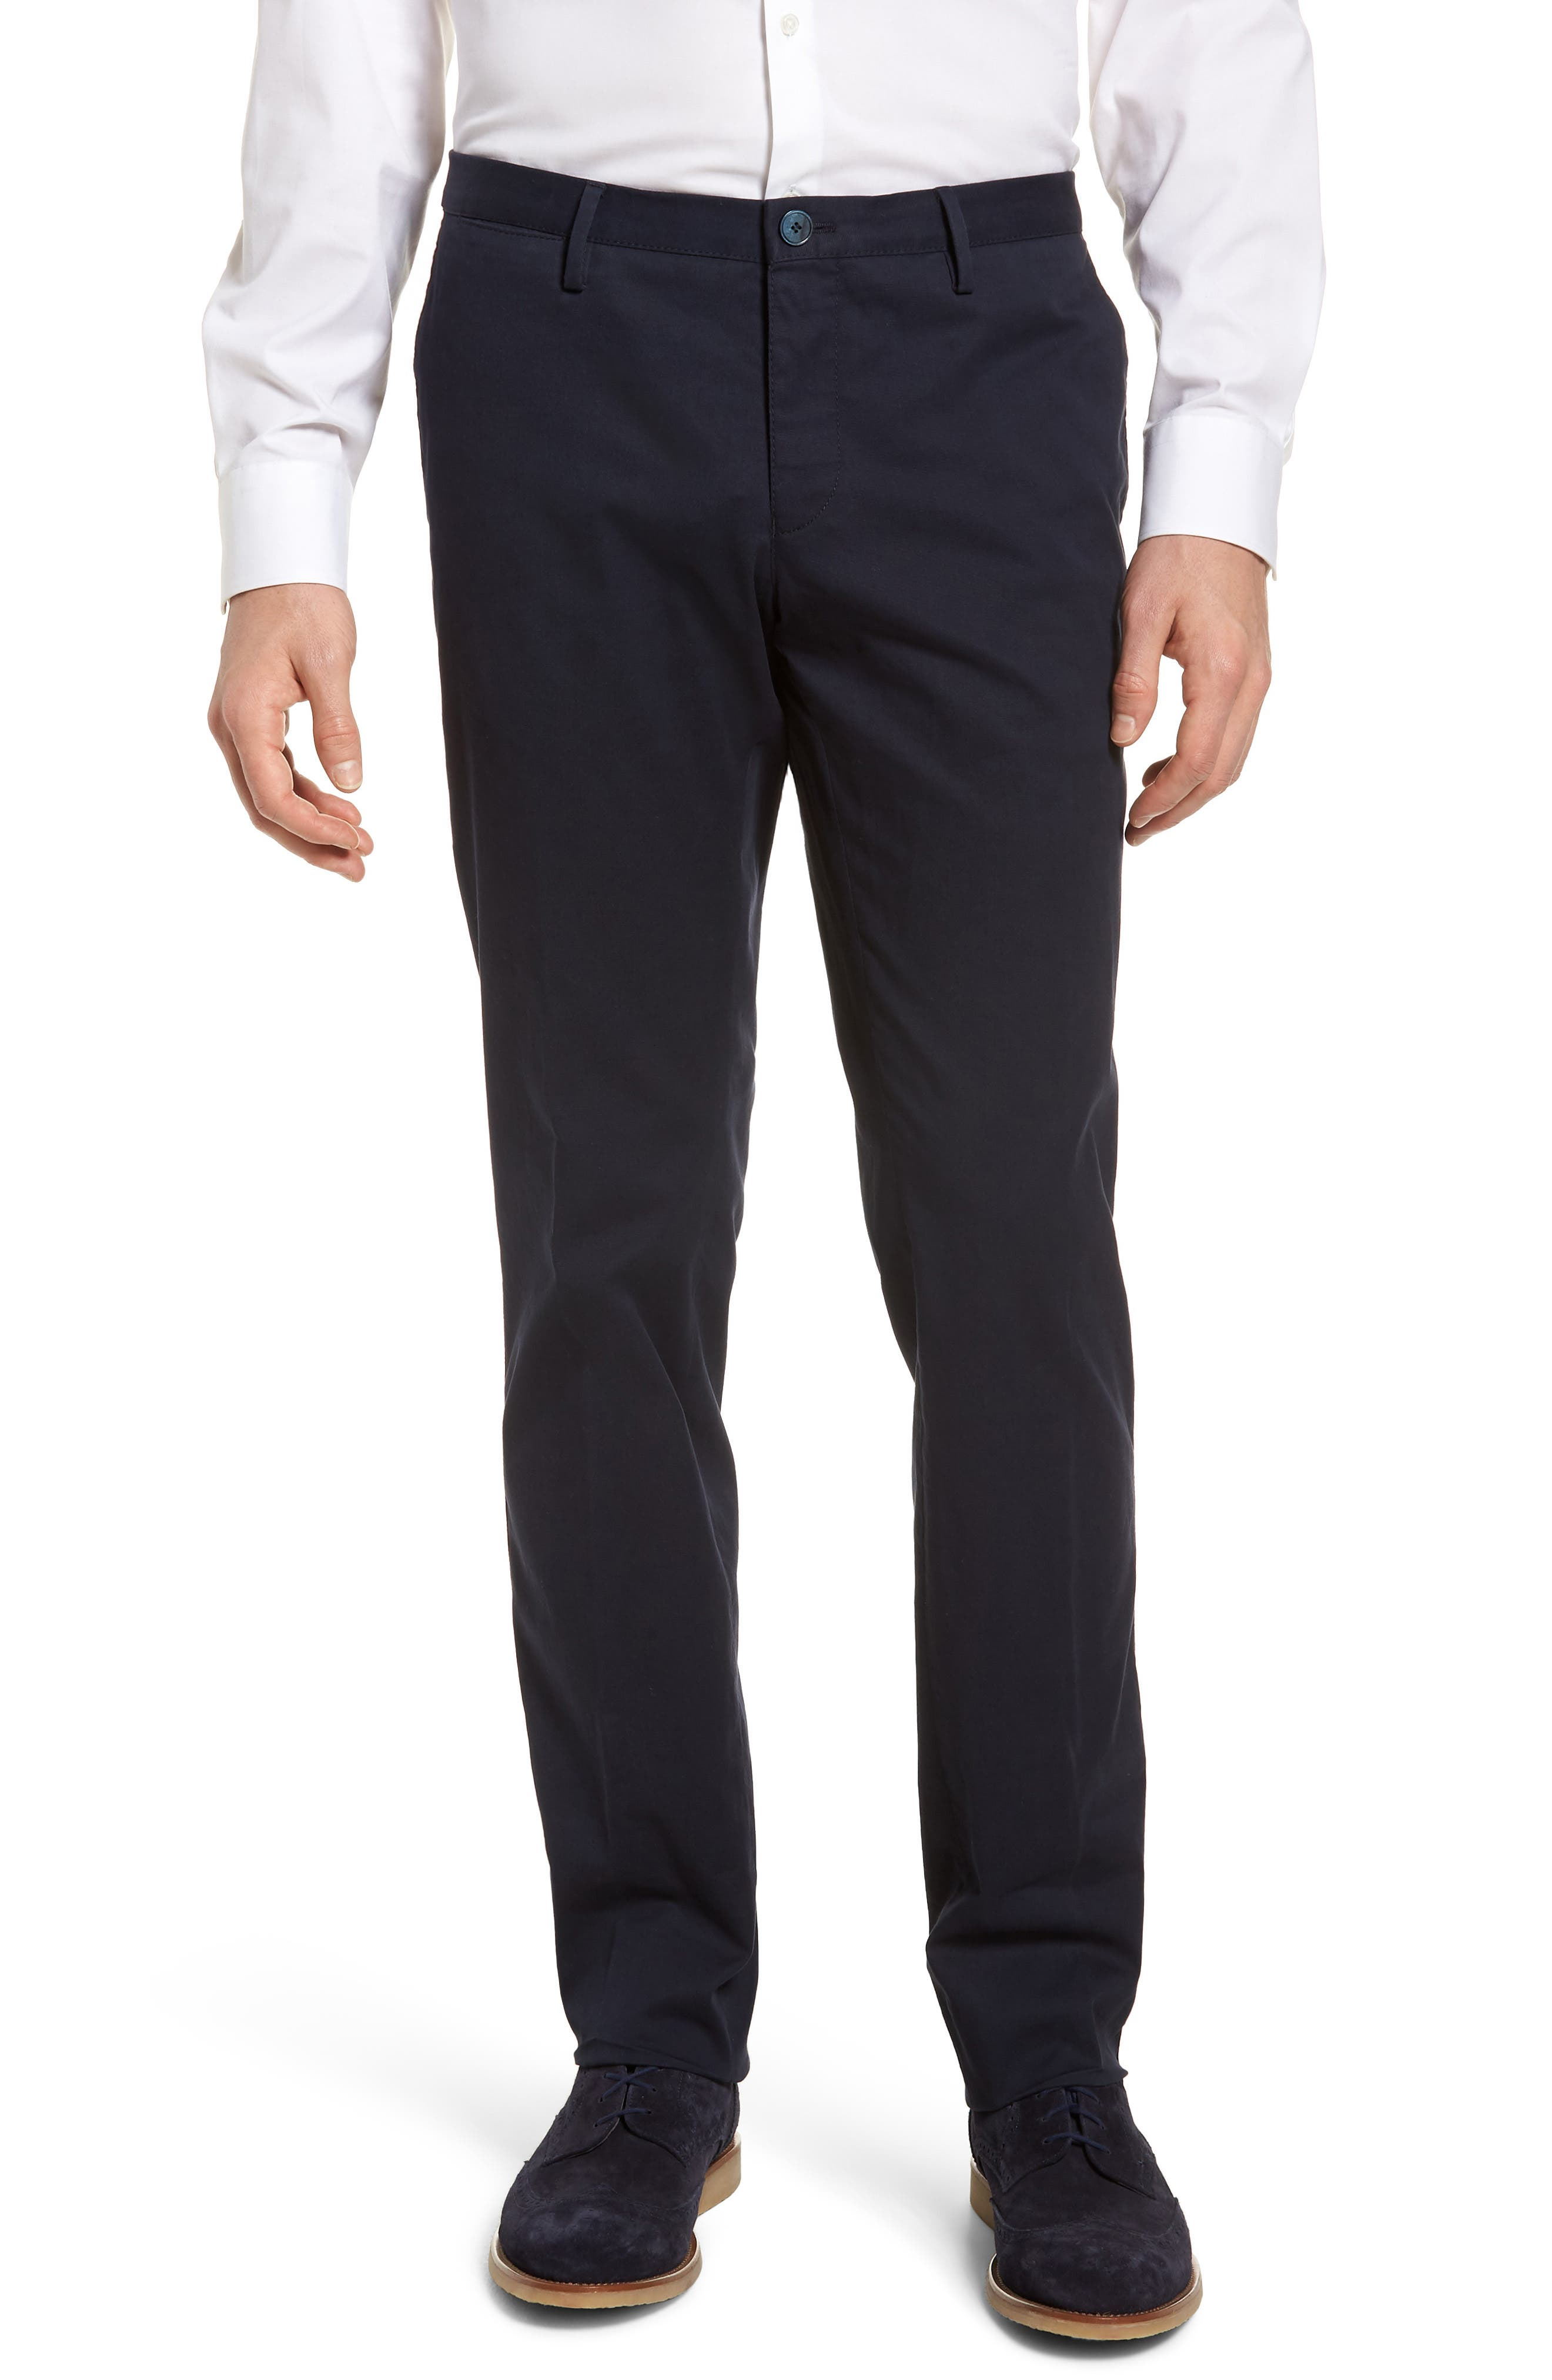 Stanino-W Flat Front Stretch Cotton Trousers,                             Main thumbnail 1, color,                             Navy